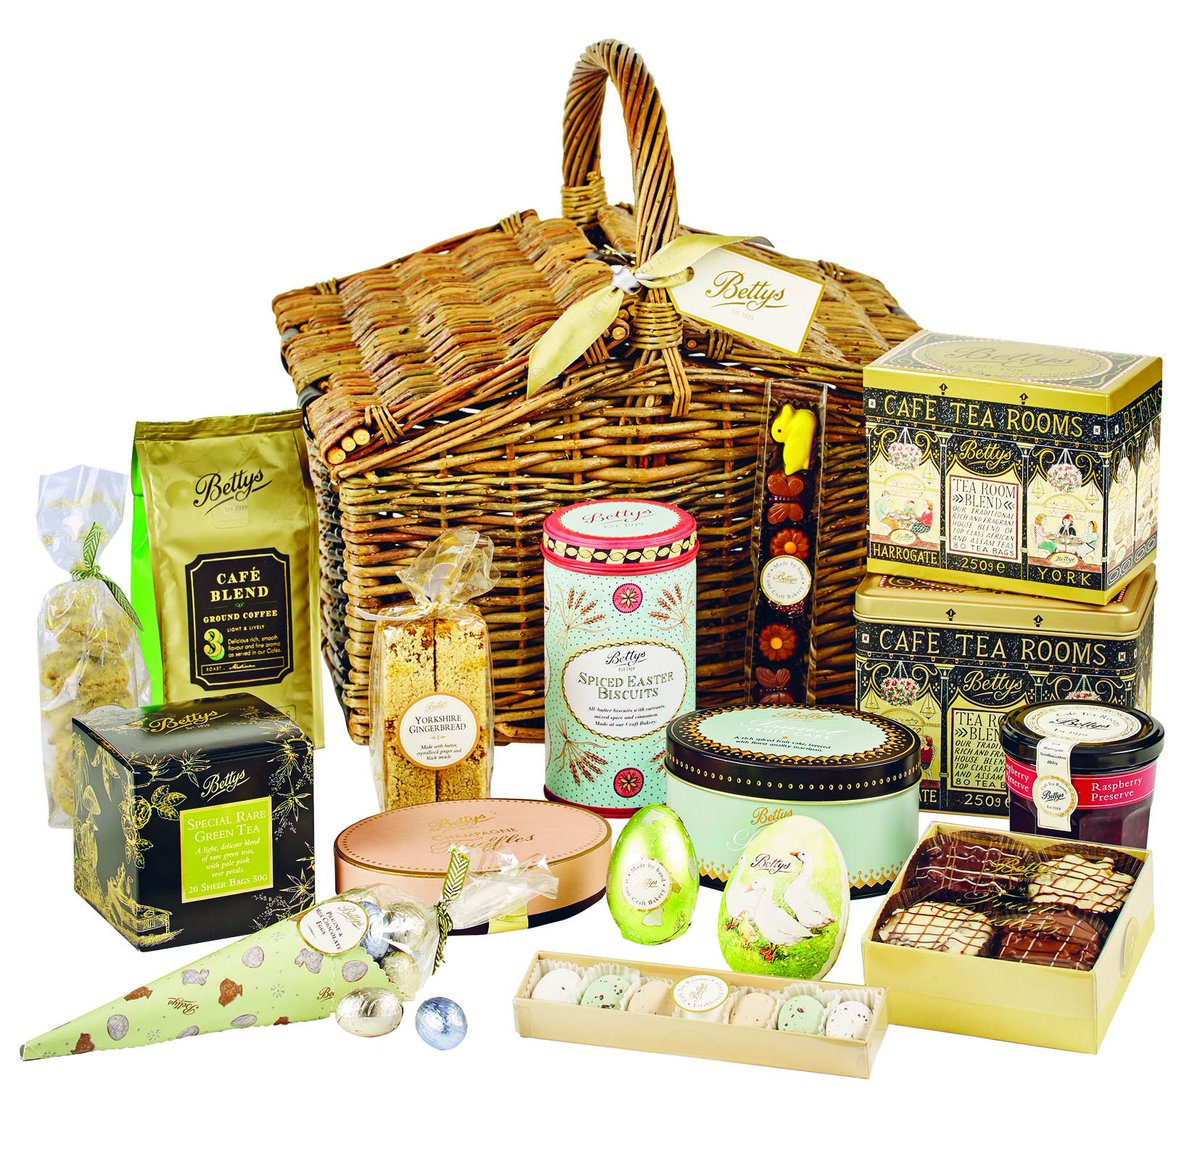 @GoodHomesMag #retweet to #win a hamper of delicious #Easter #treats, worth £150 from @bettys1919 https://t.co/qjm6FZ1WNx.